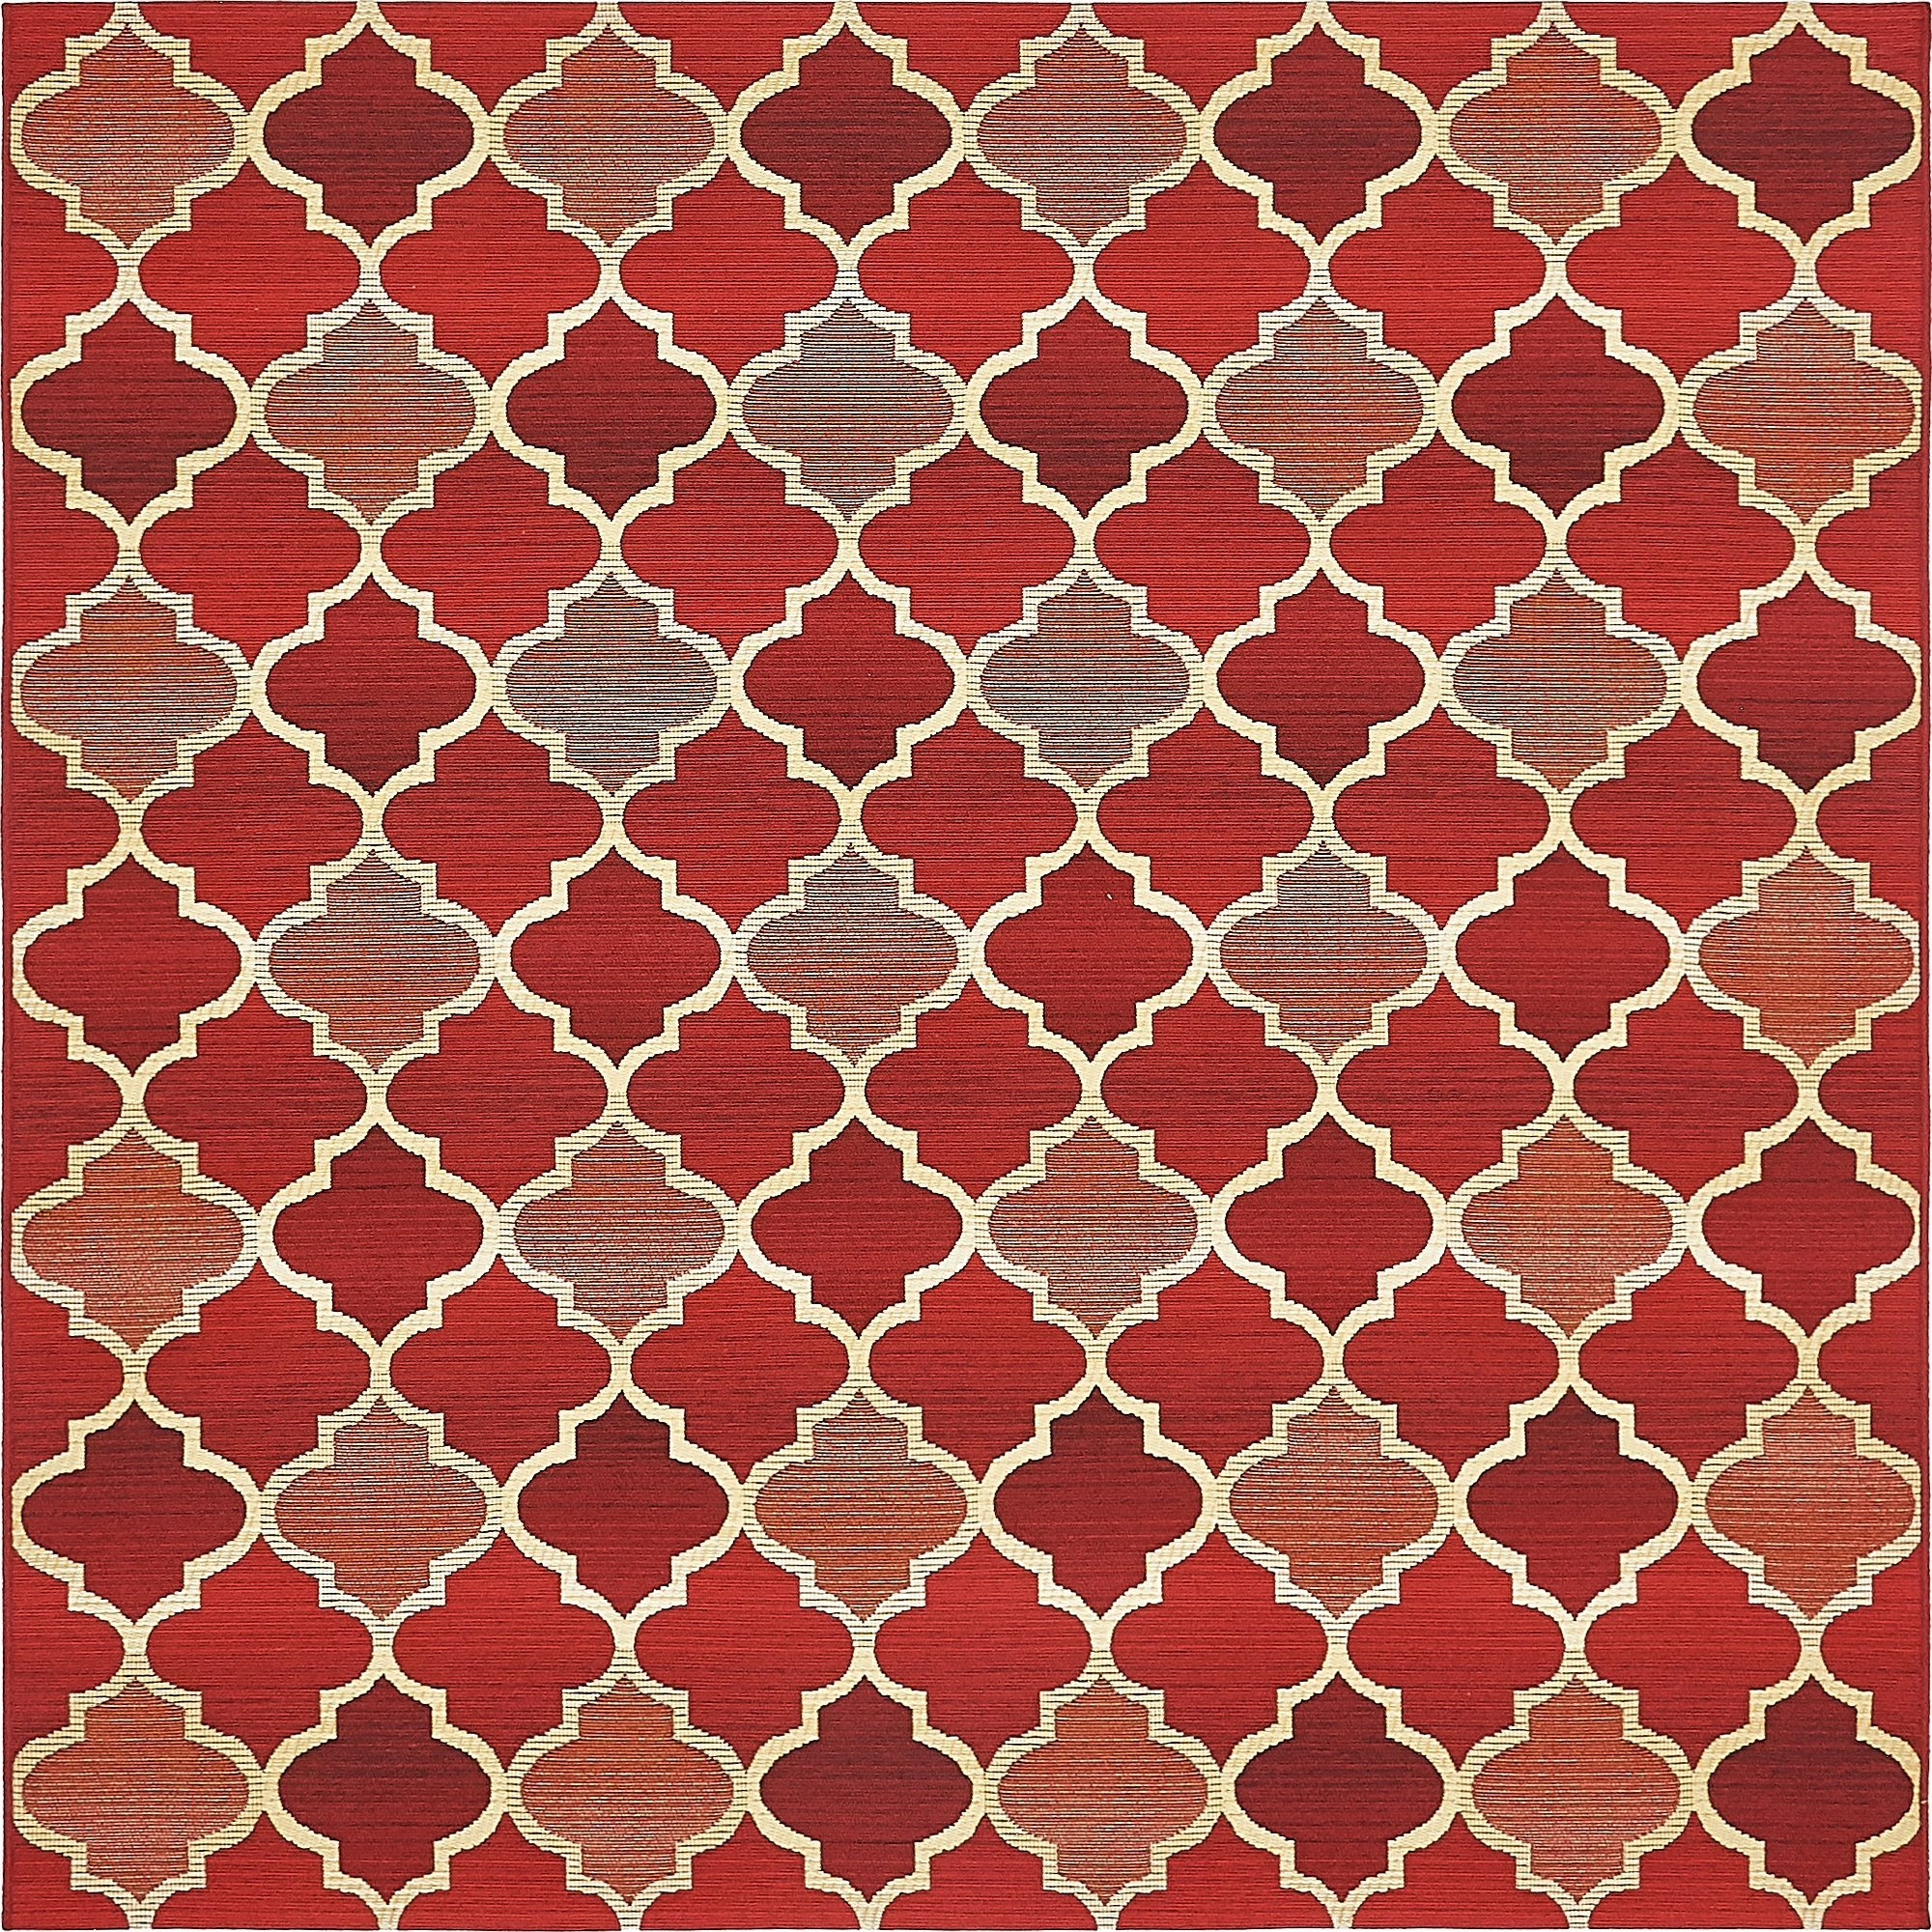 Unique Loom Eden Outdoor Collection Red 6 ft Square Area Rug (6' x 6')